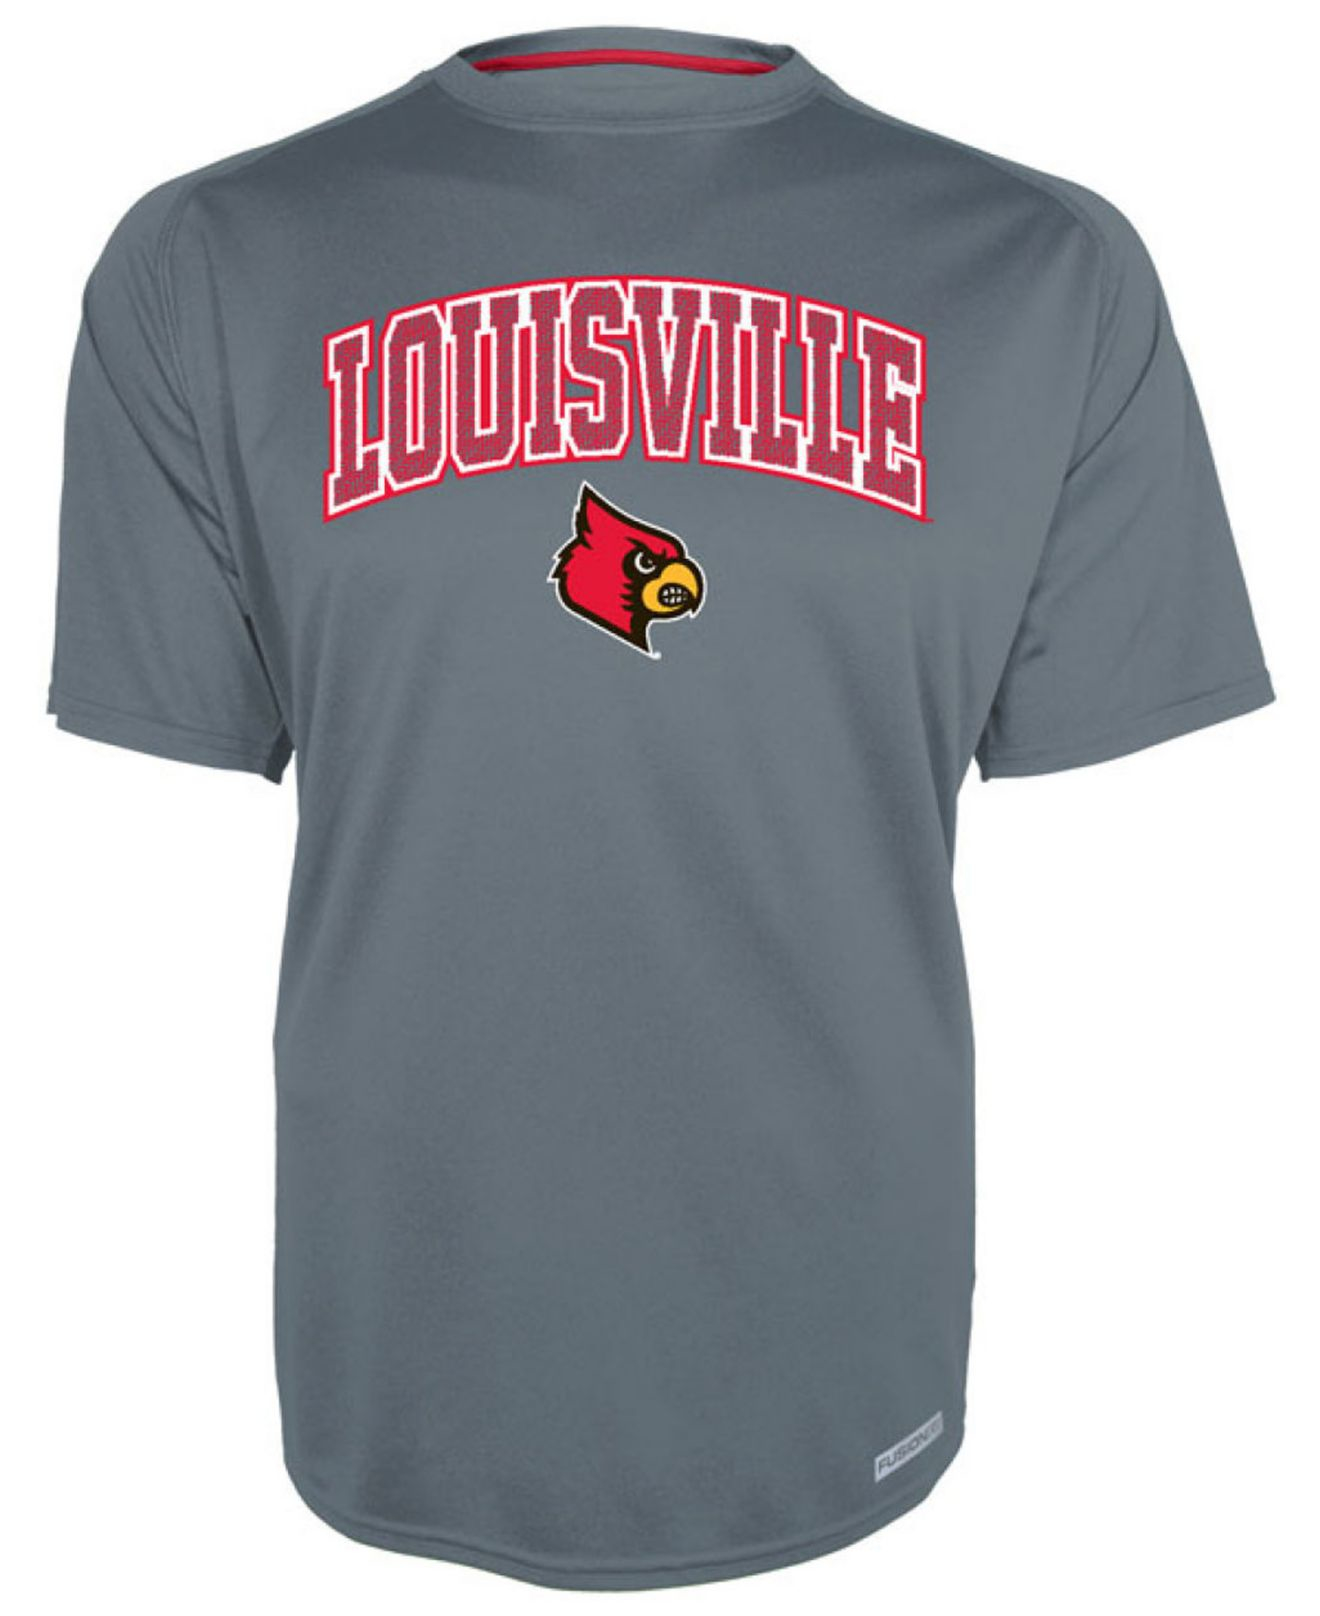 Knights apparel men 39 s louisville cardinals training t for Louisville t shirt printing